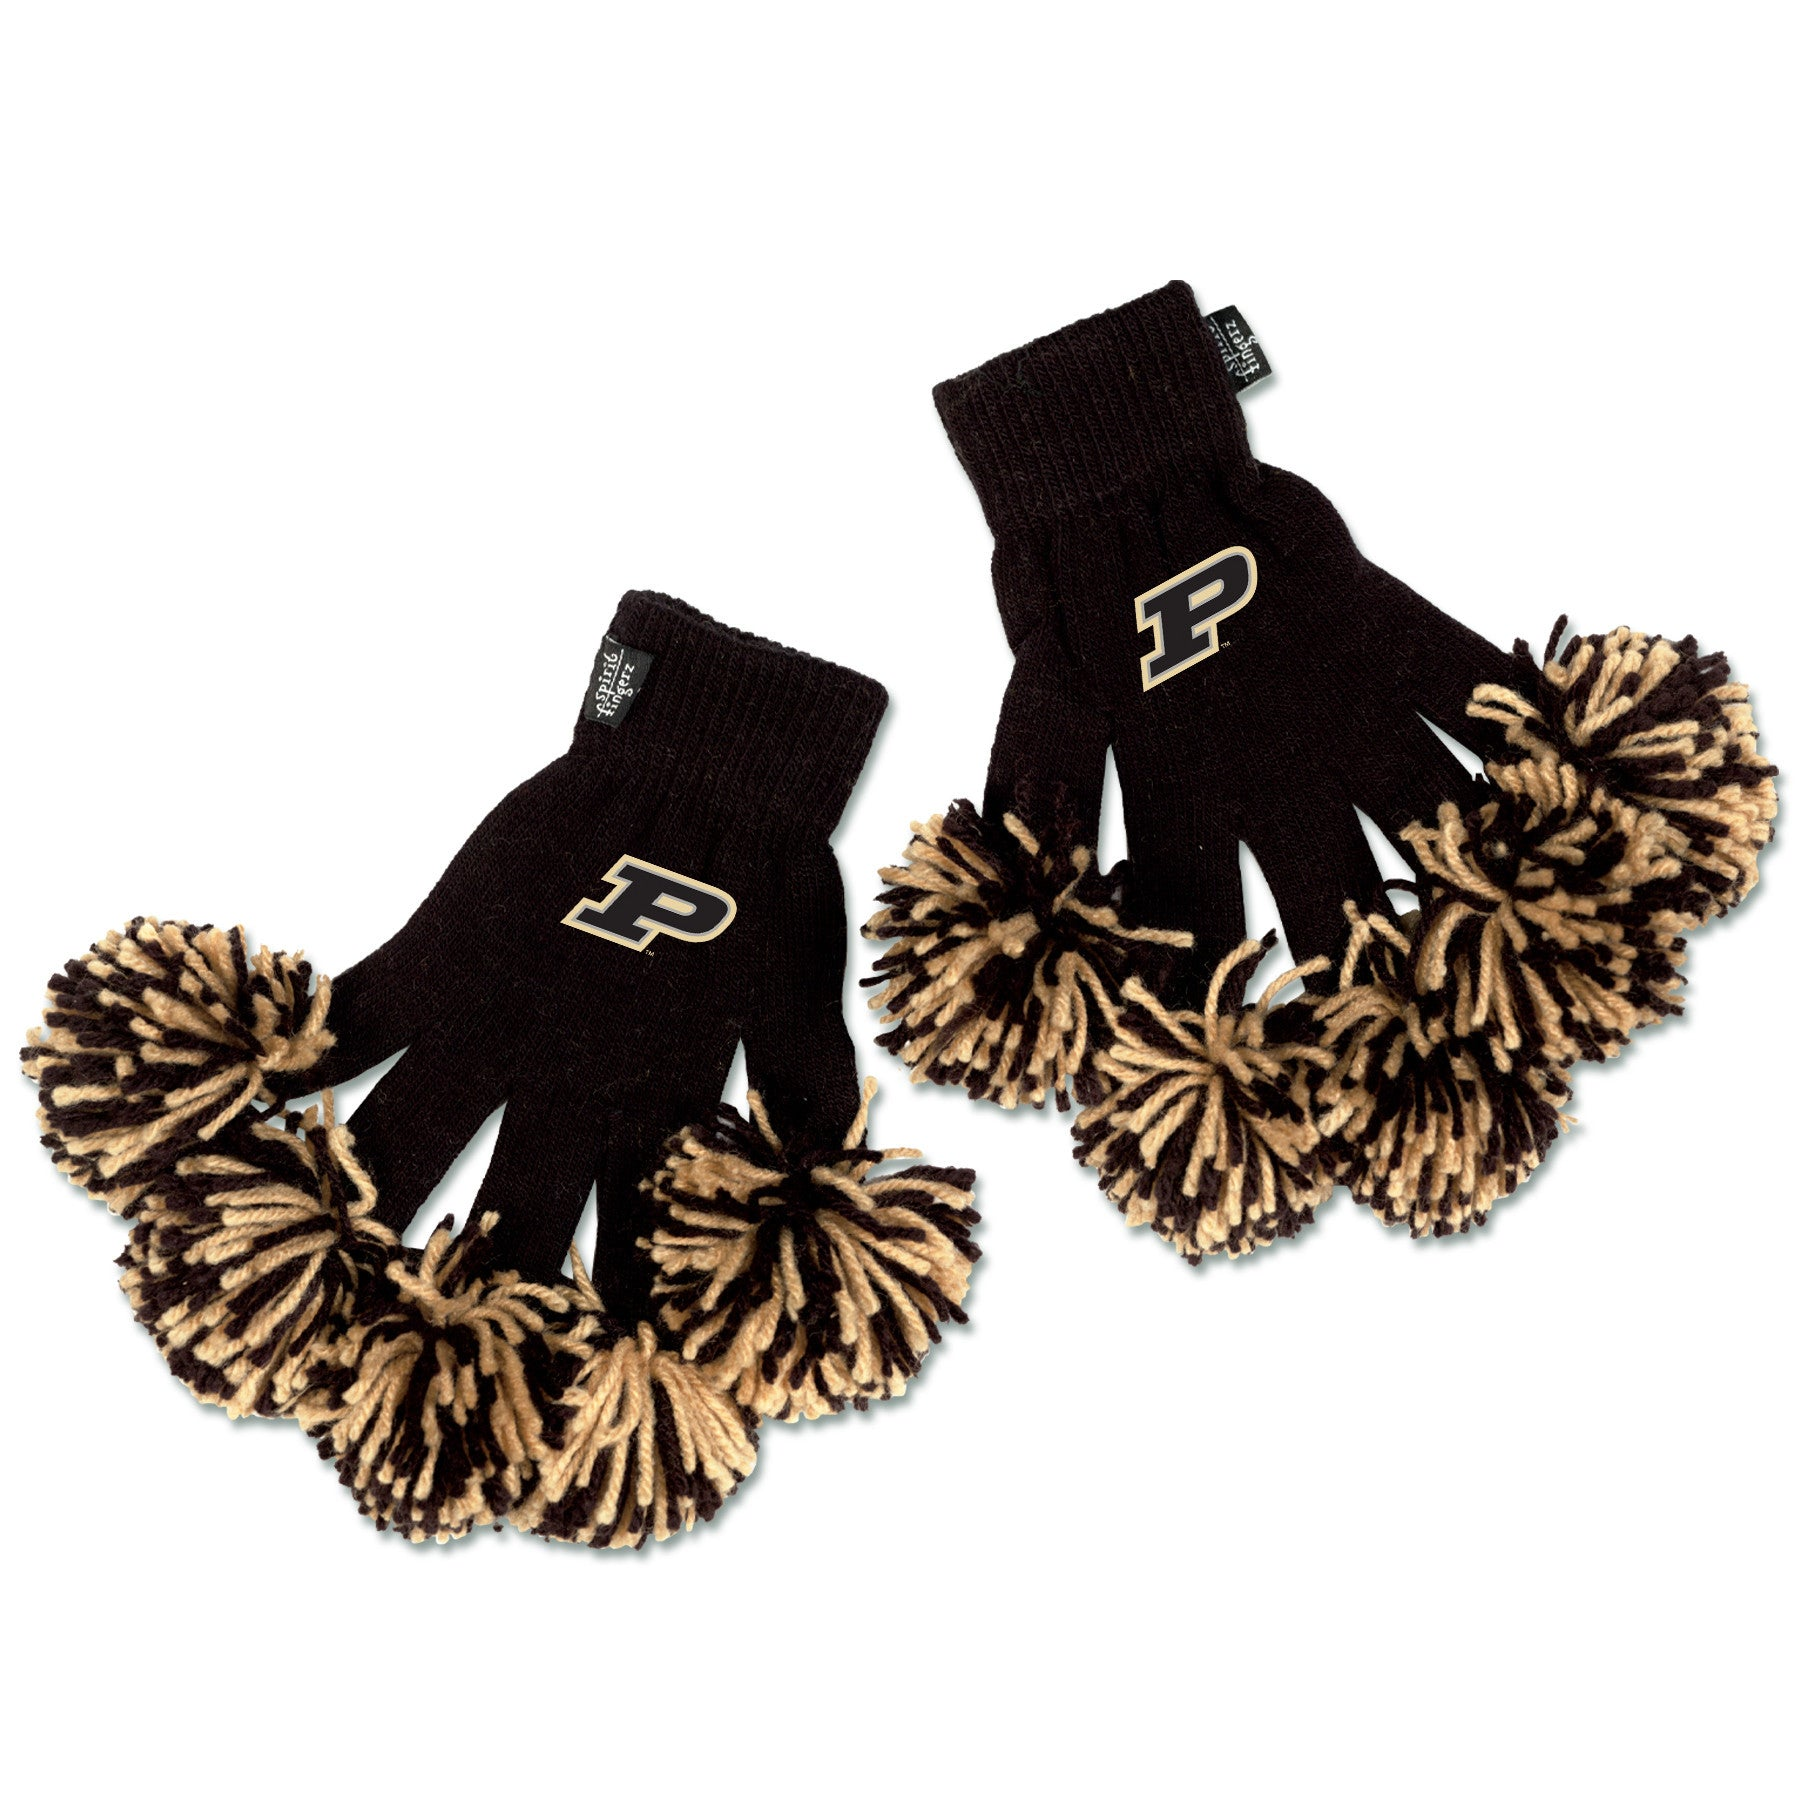 Purdue Boilermakers NCAA Spirit Fingerz Cheerleading Pom-Pom Gloves